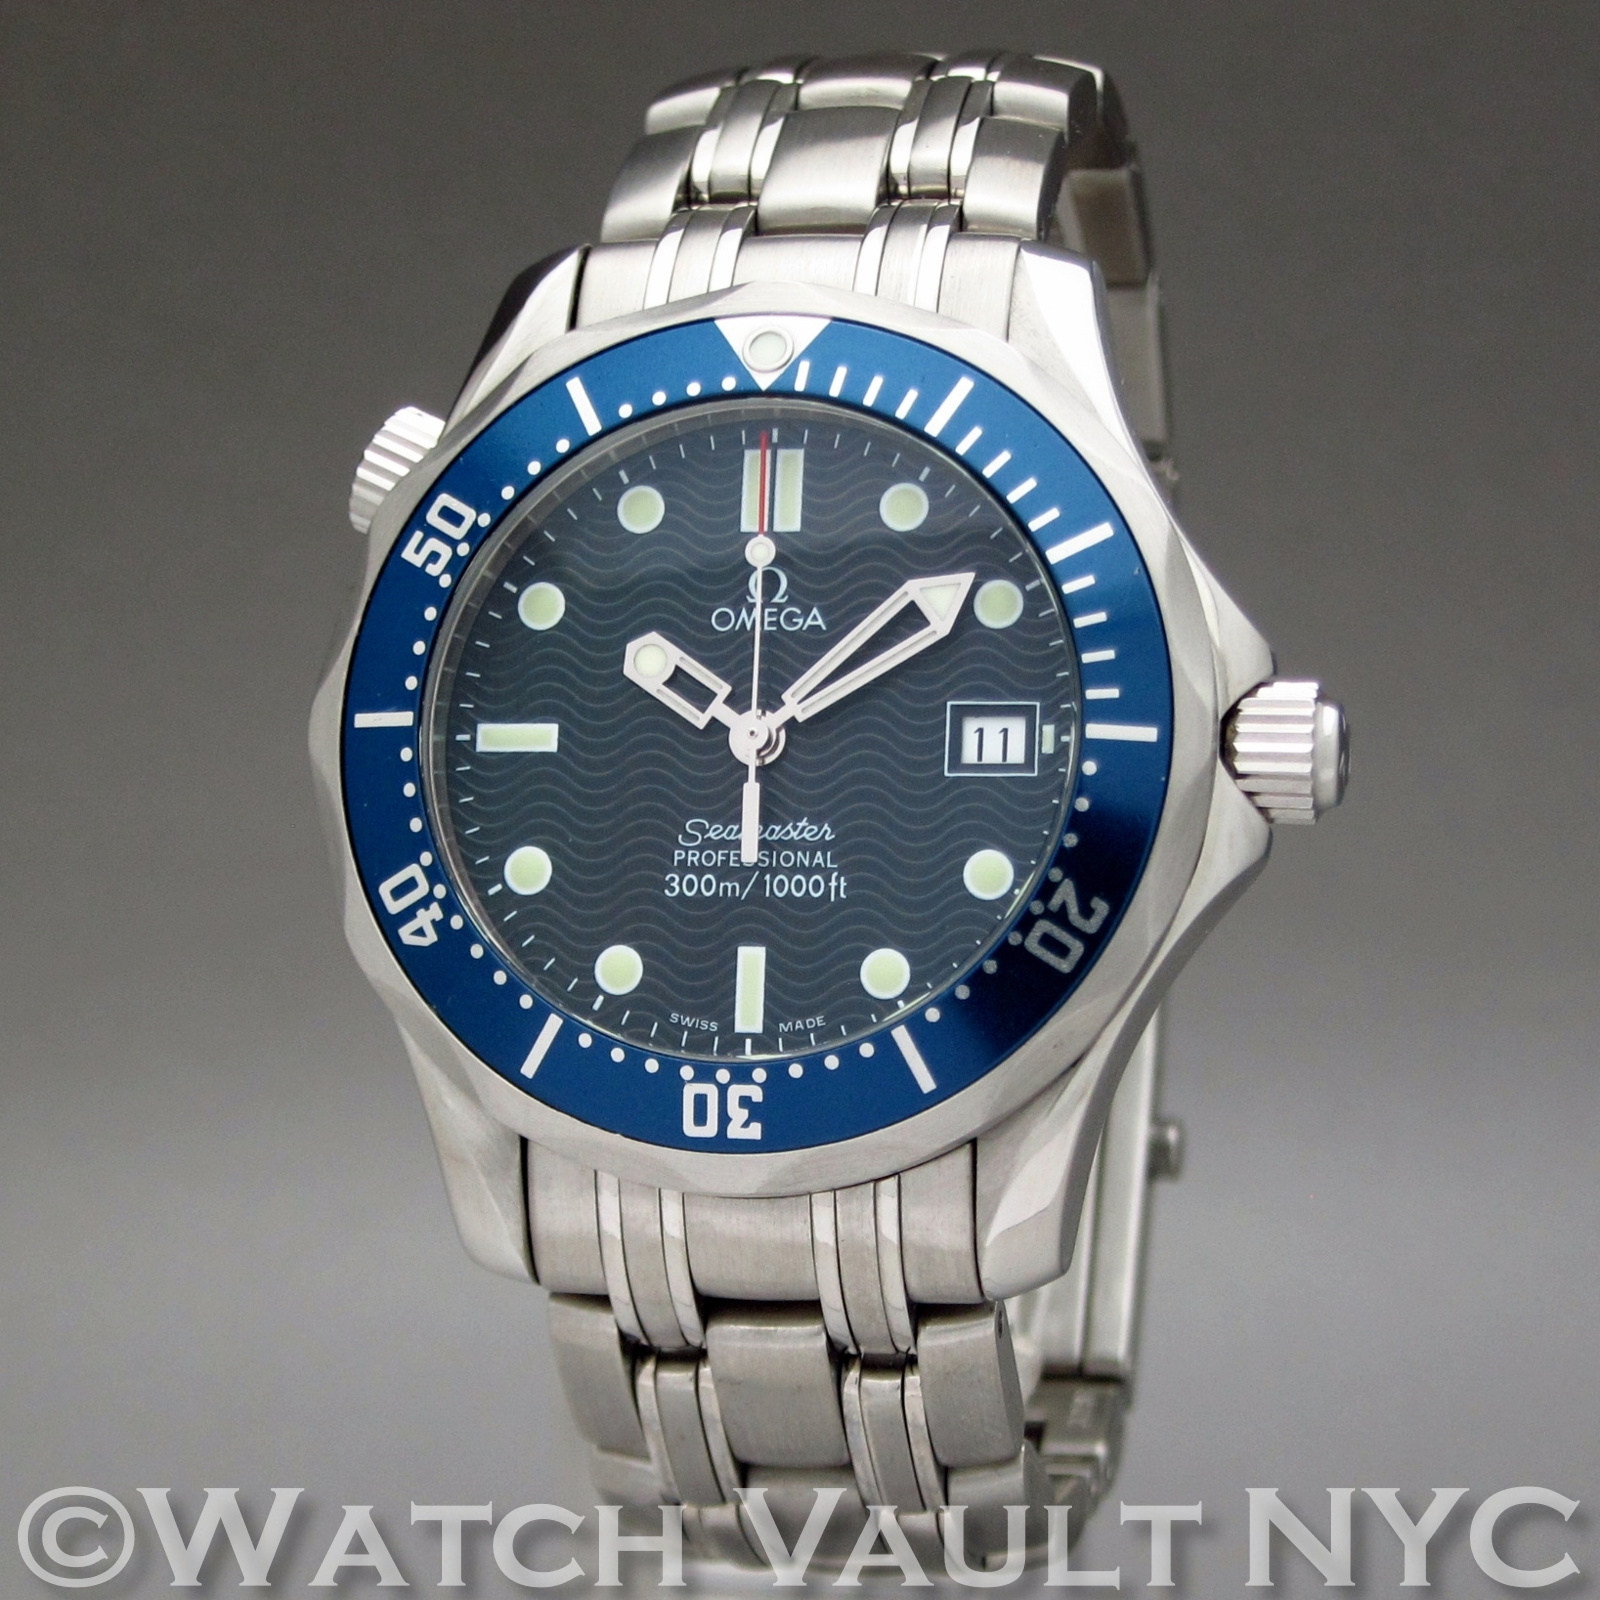 Omega seamaster professional james bond 300m for Omega seamaster professional